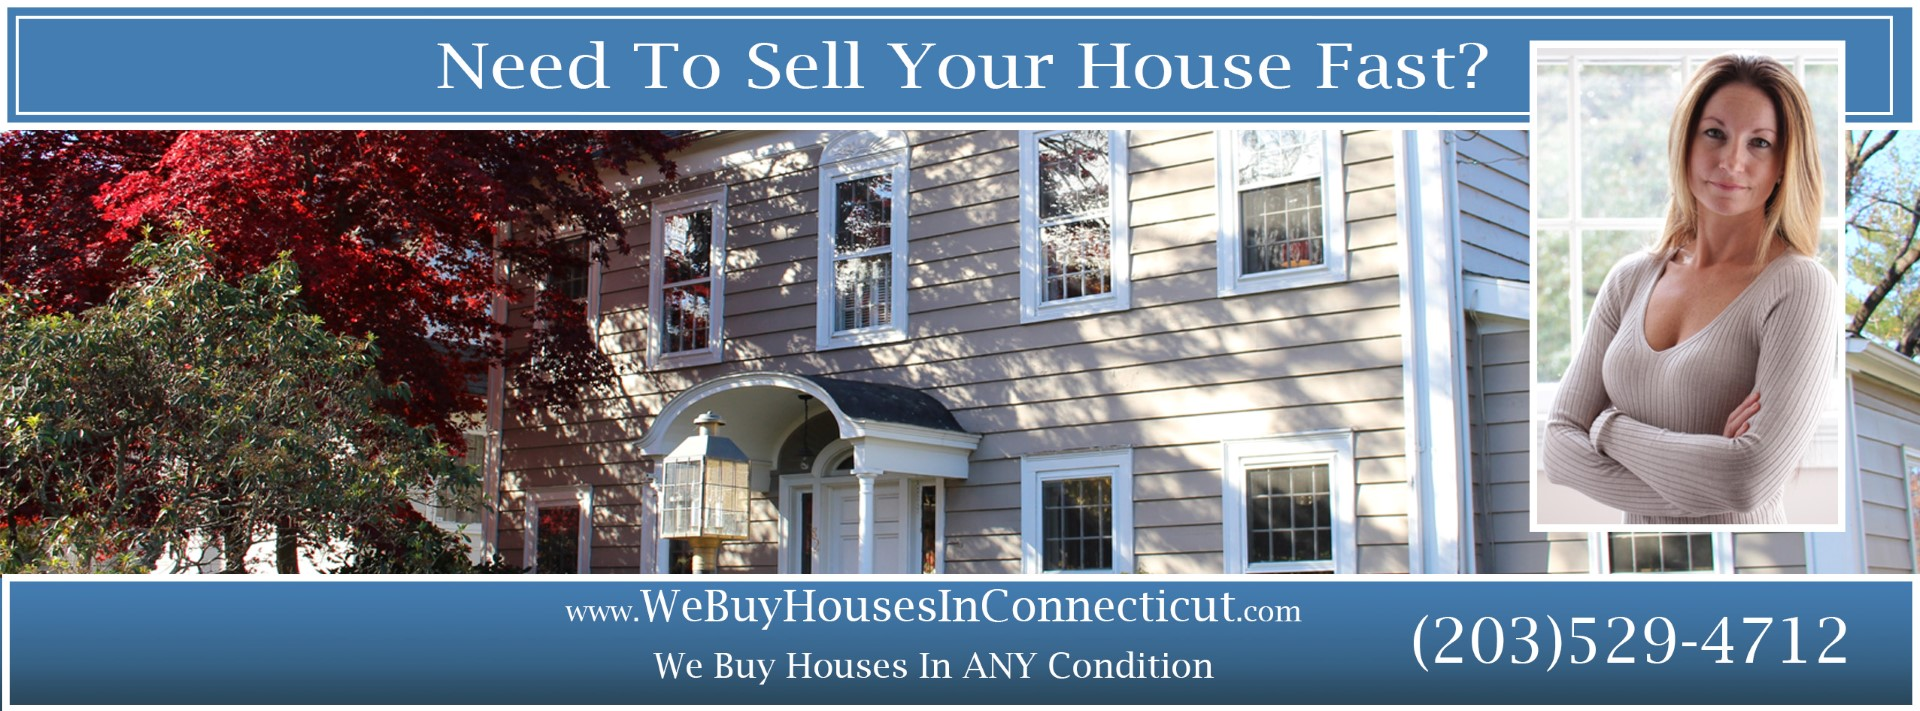 We Buy Houses In Connecticut Banner